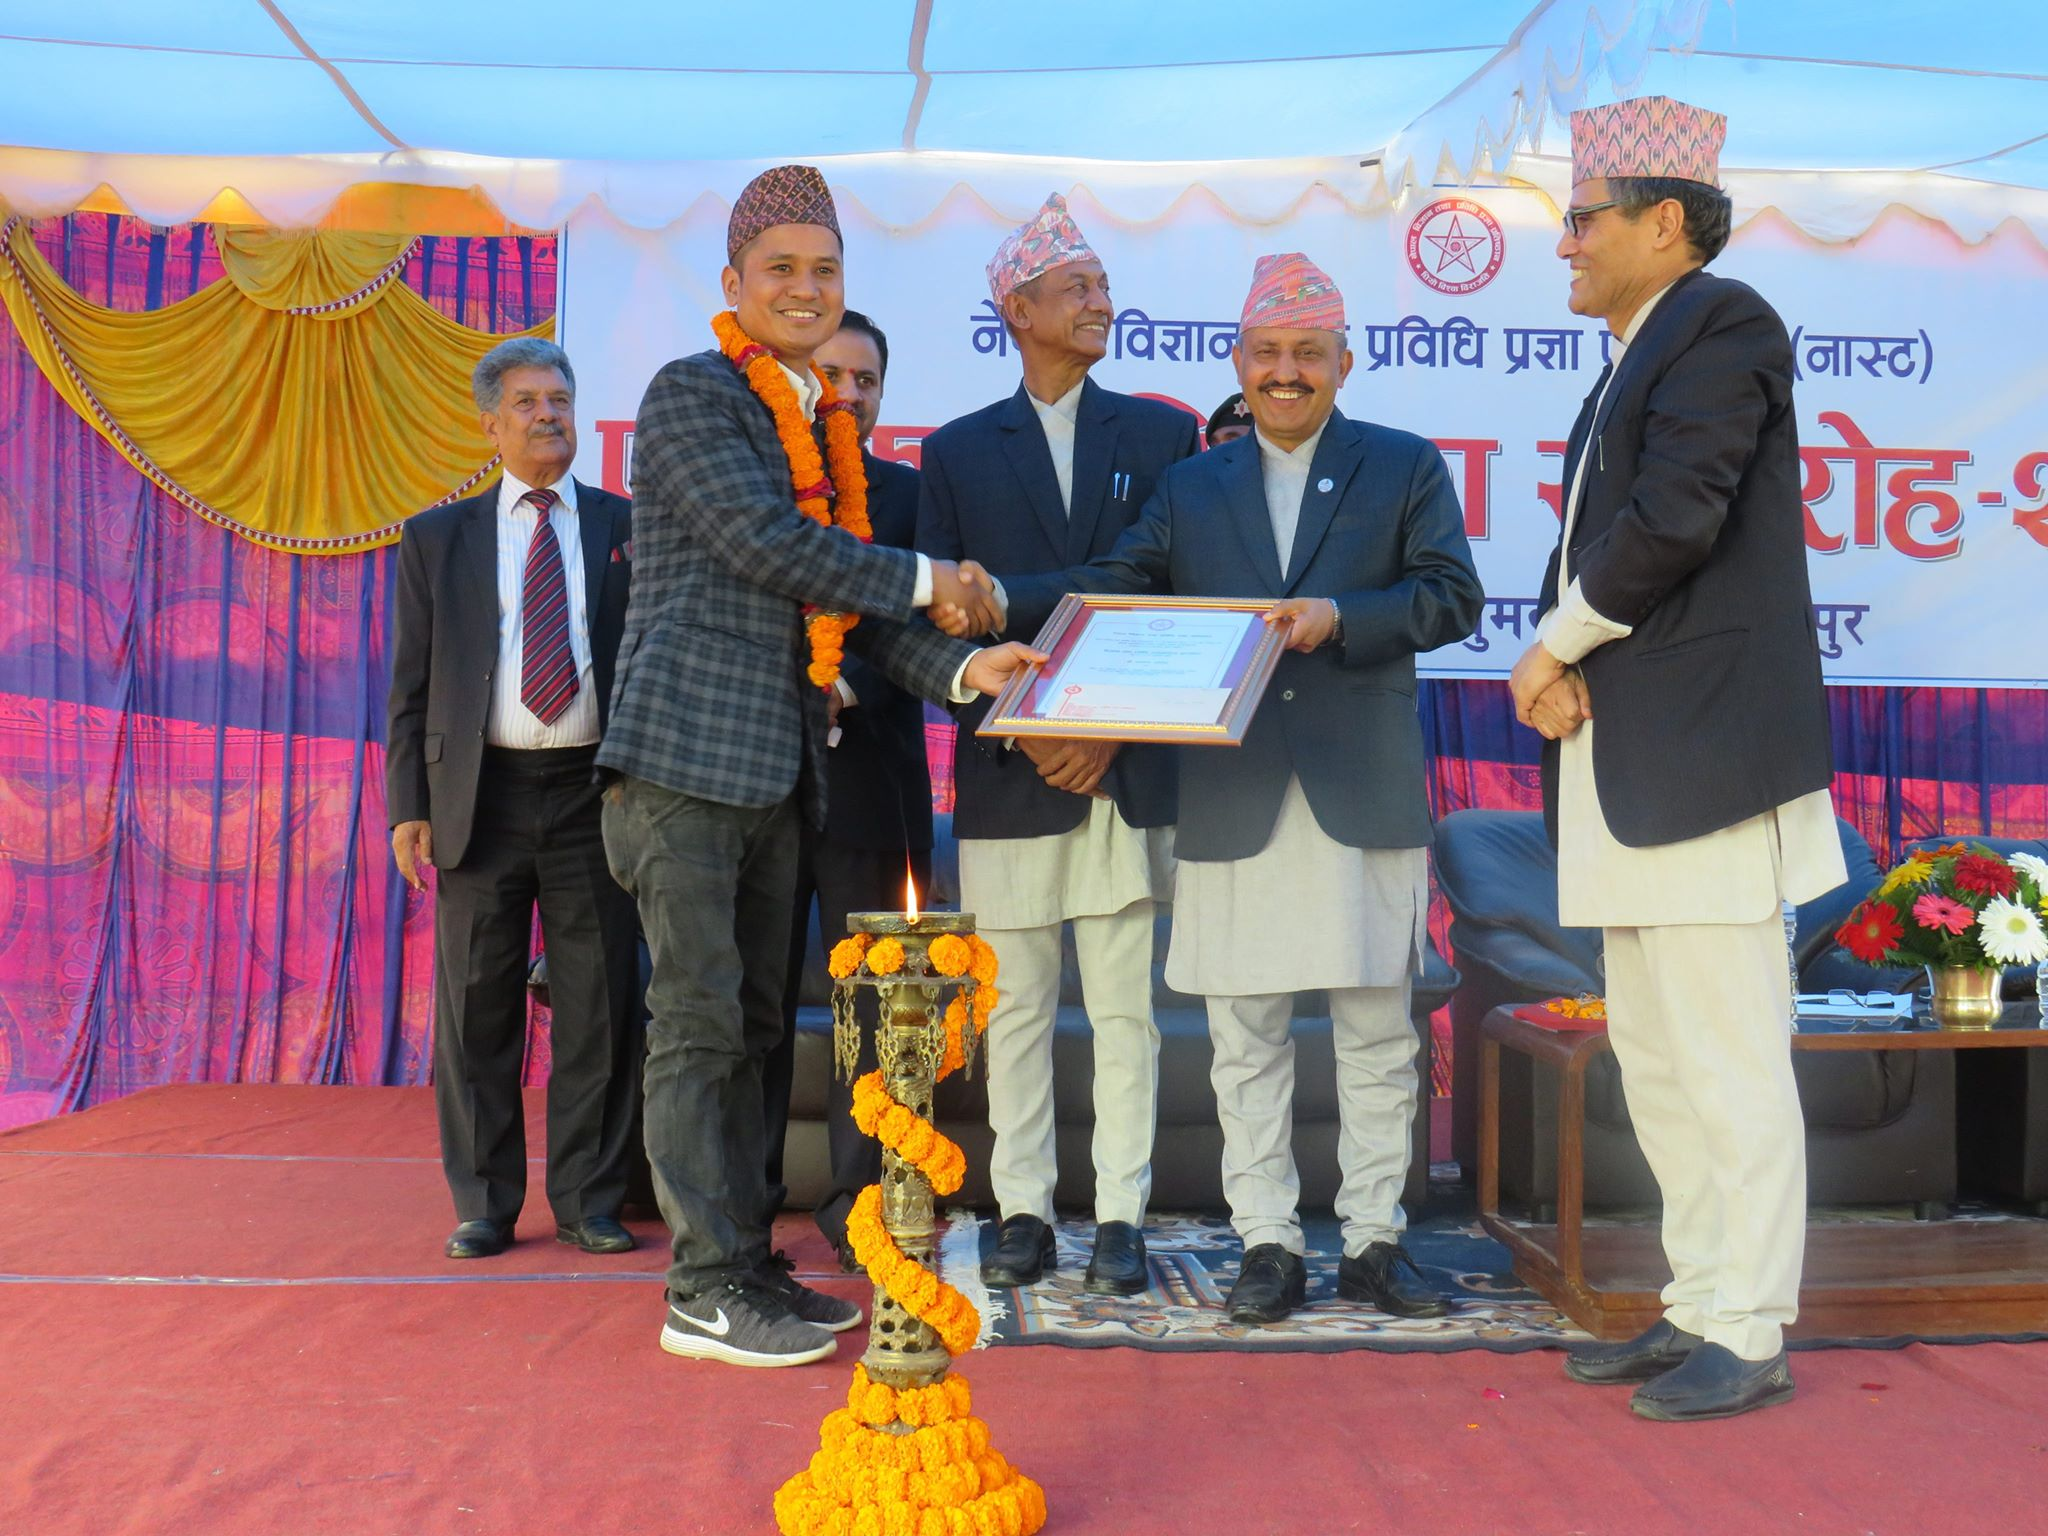 Journo Dangol felicitated with Science and Technology award